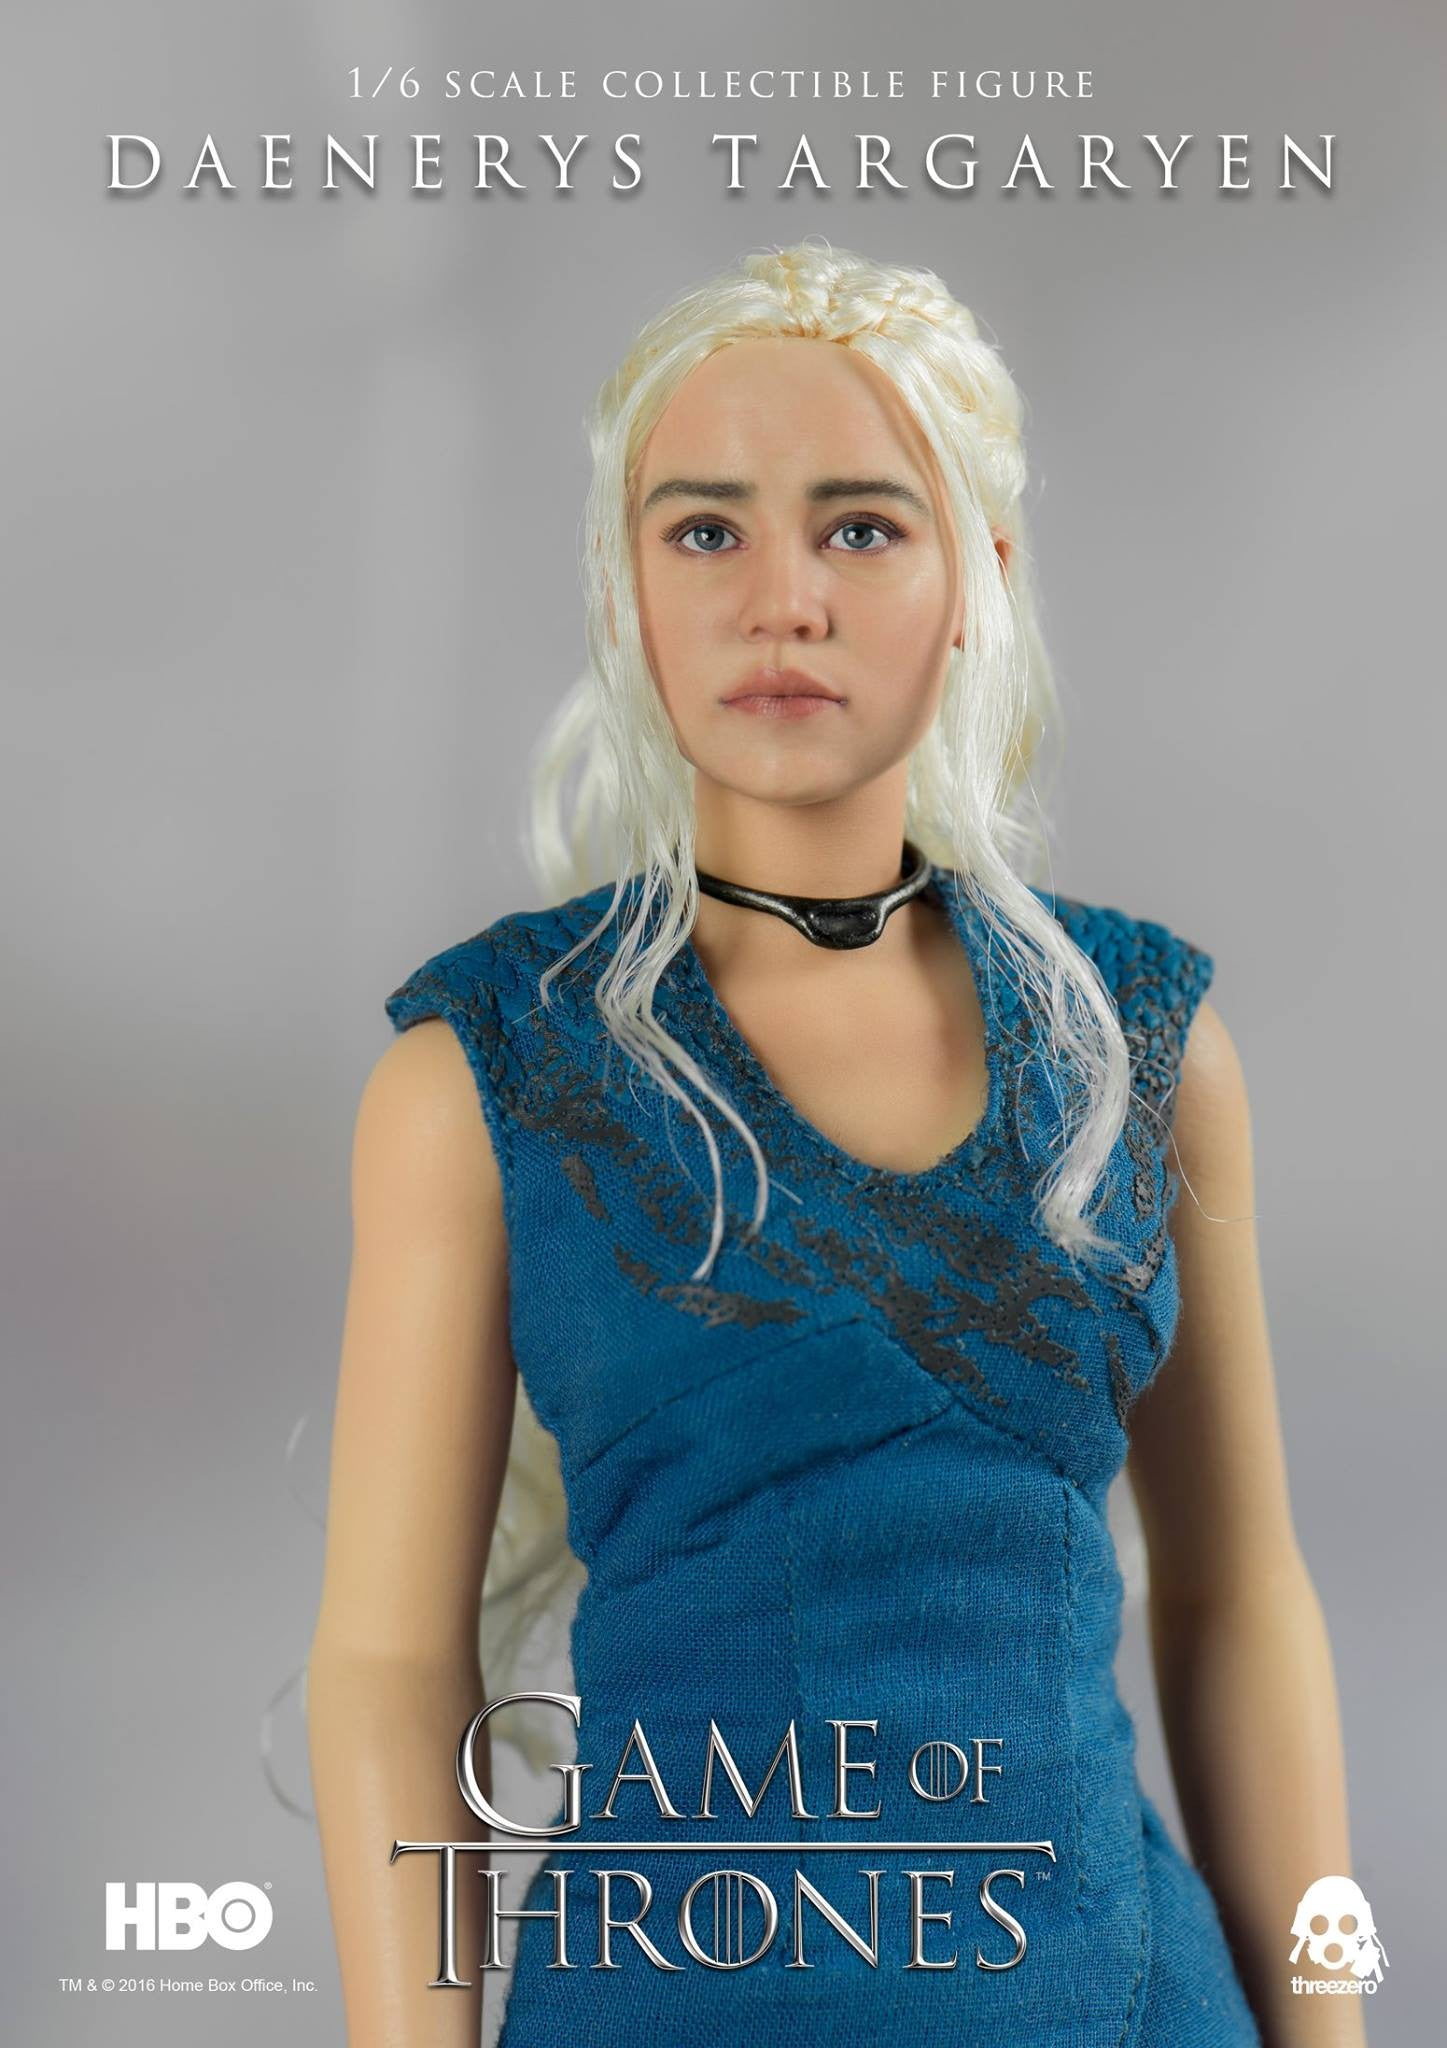 ThreeZero - Game of Thrones - Daenerys Targaryen - Marvelous Toys - 12